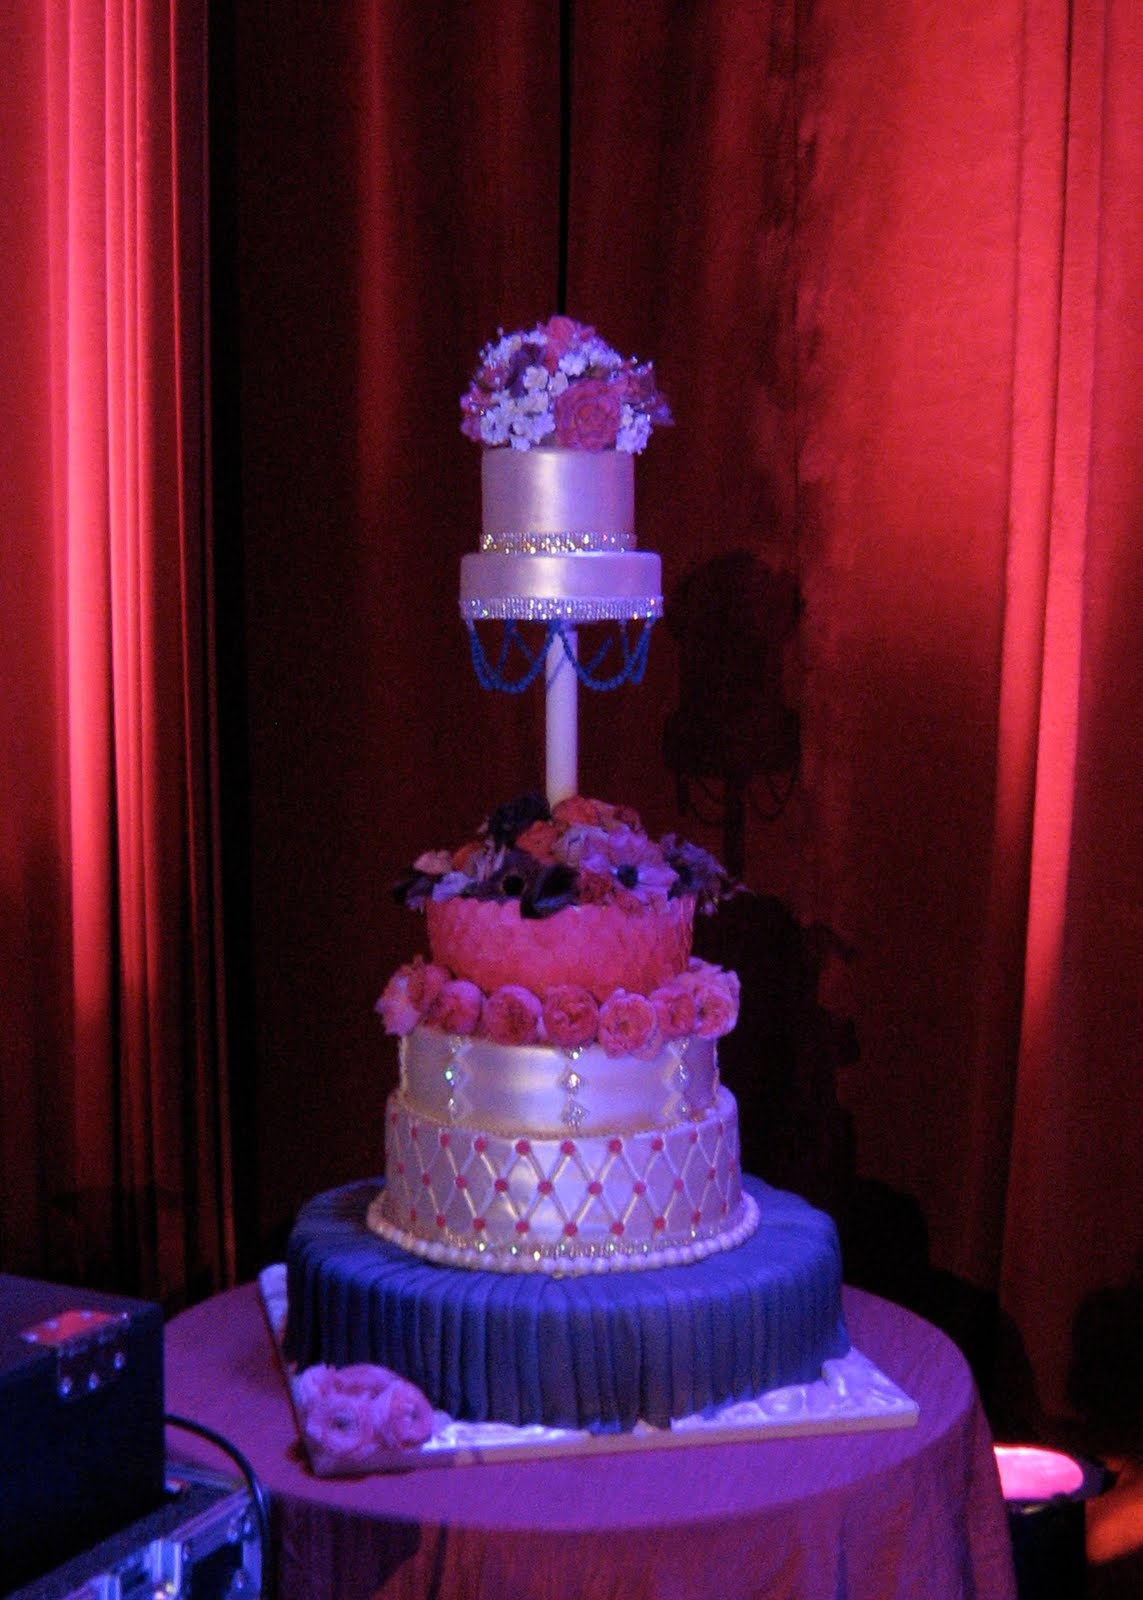 sublime bakery wedding cake for my fair wedding with david tutera